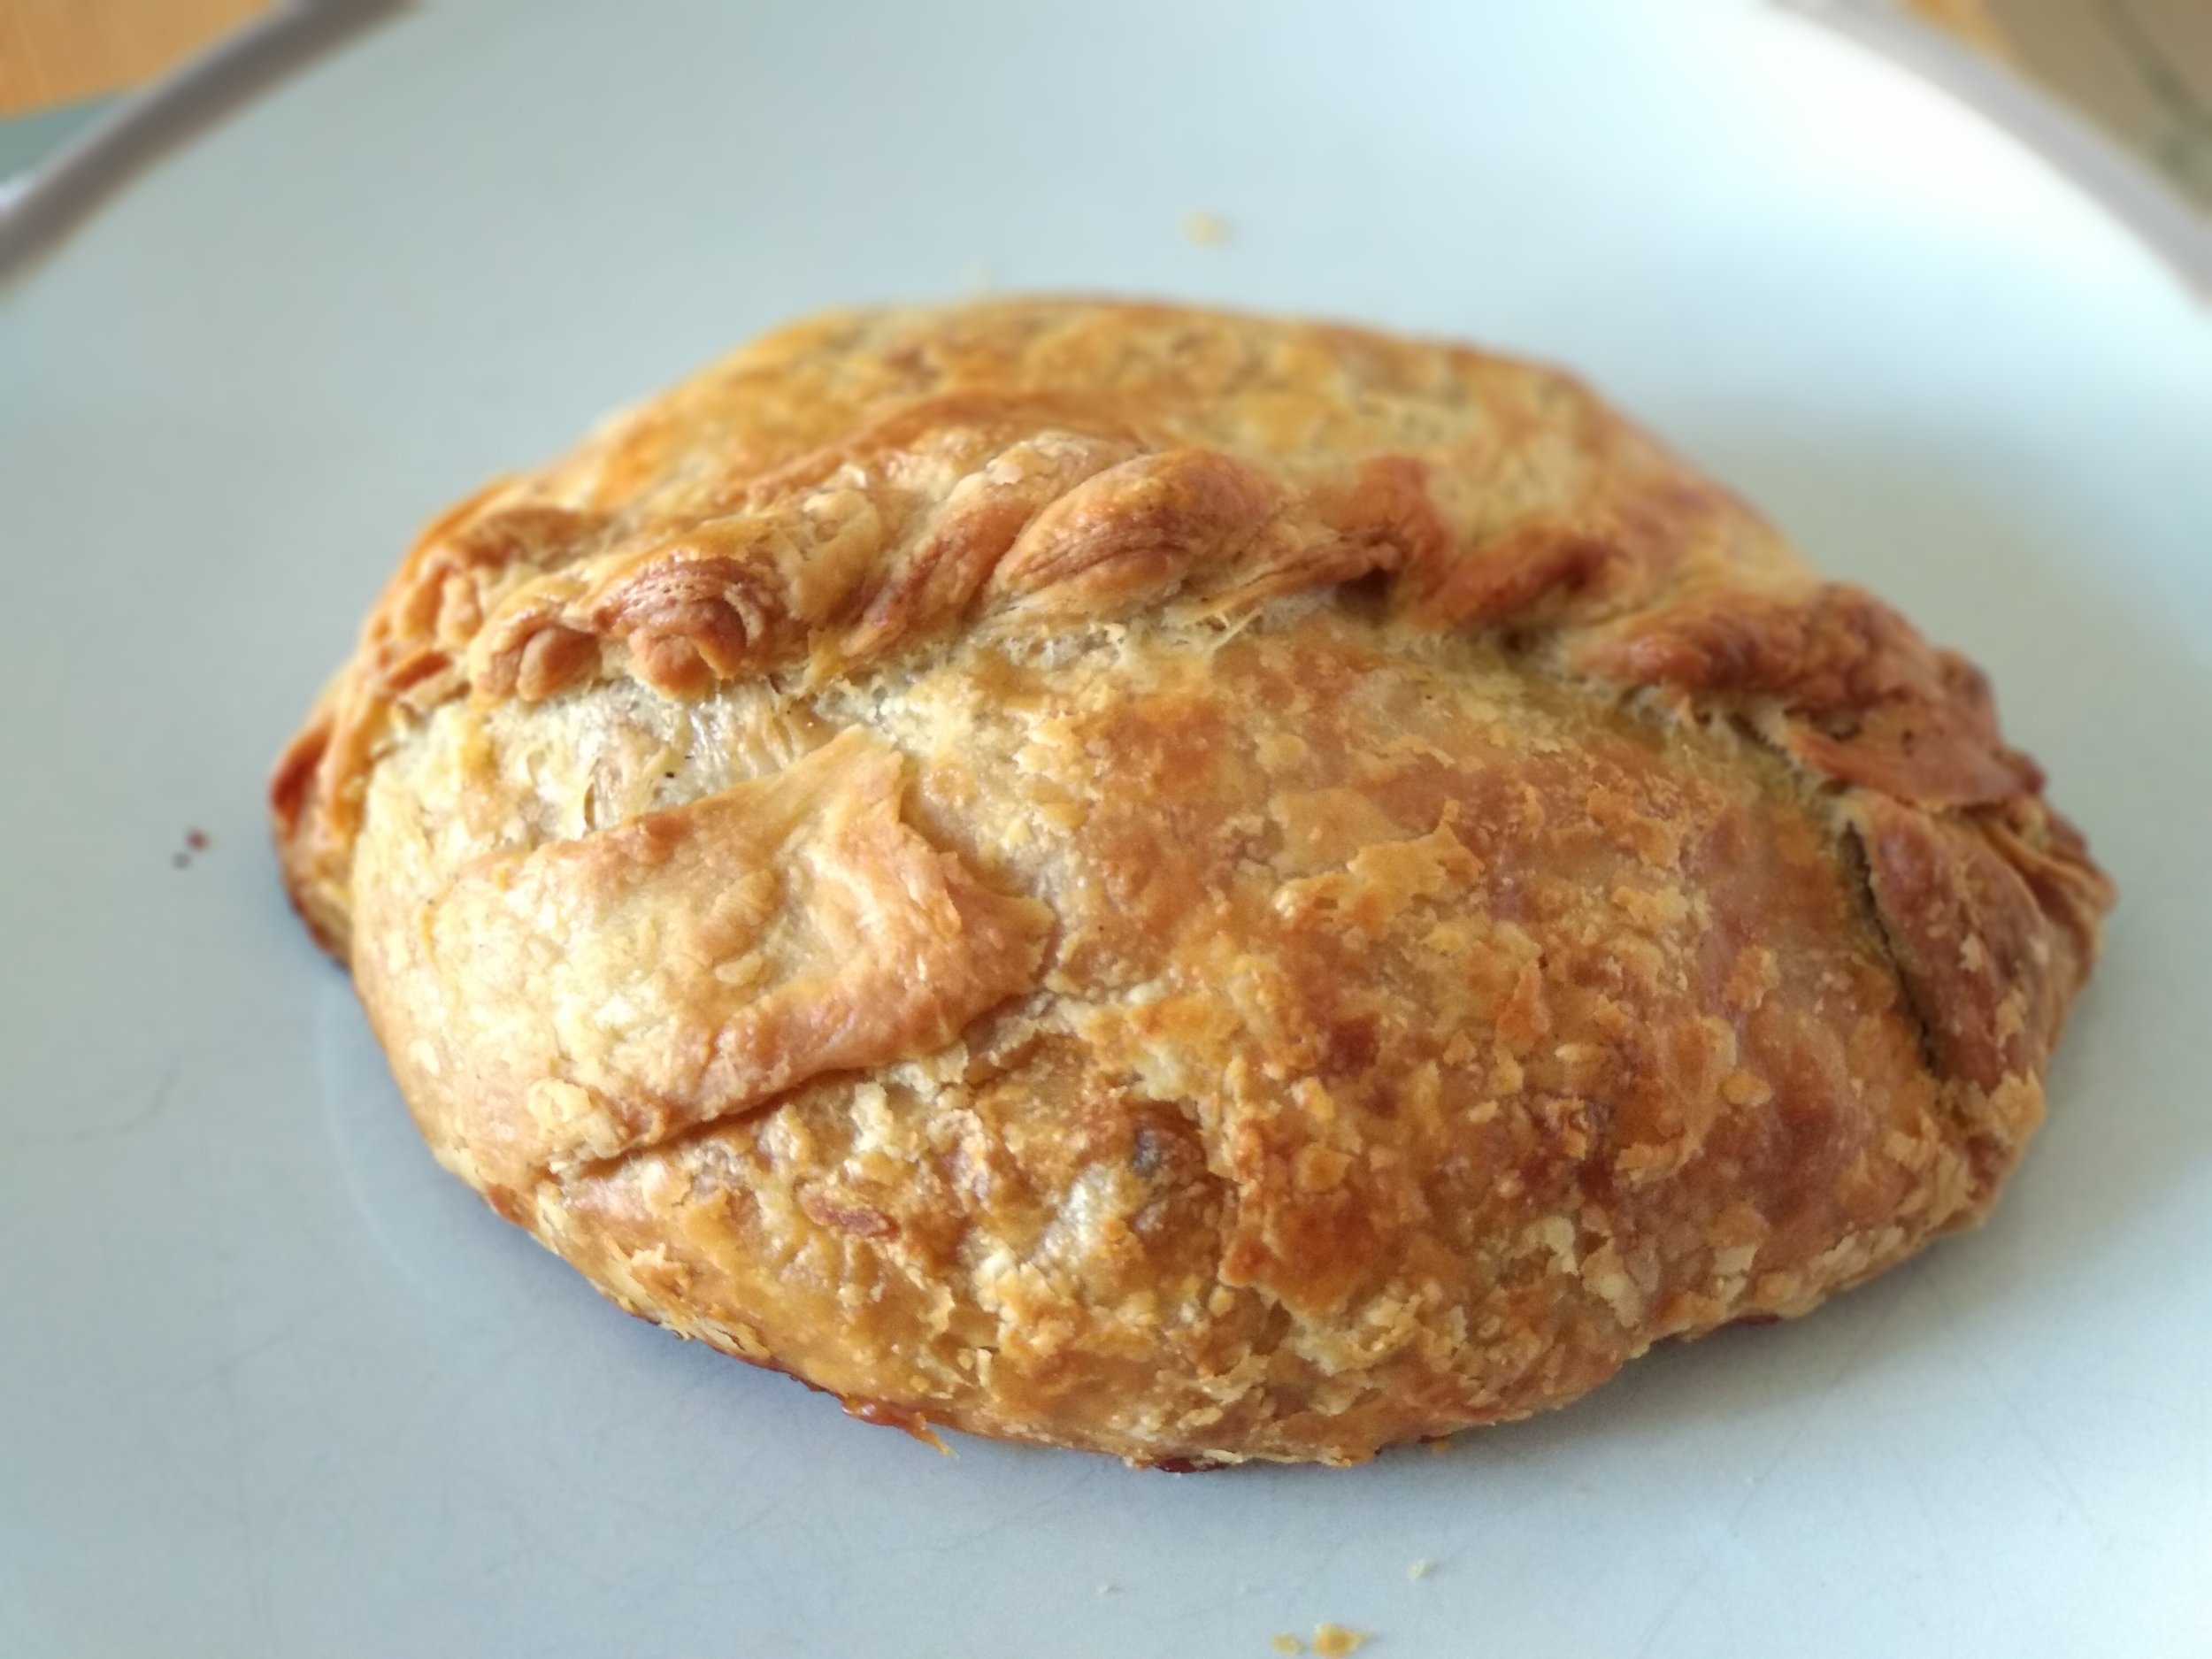 Cornish pasty: beef, potatoes, onions, rutabaga (swede). All you need in a convenient package.